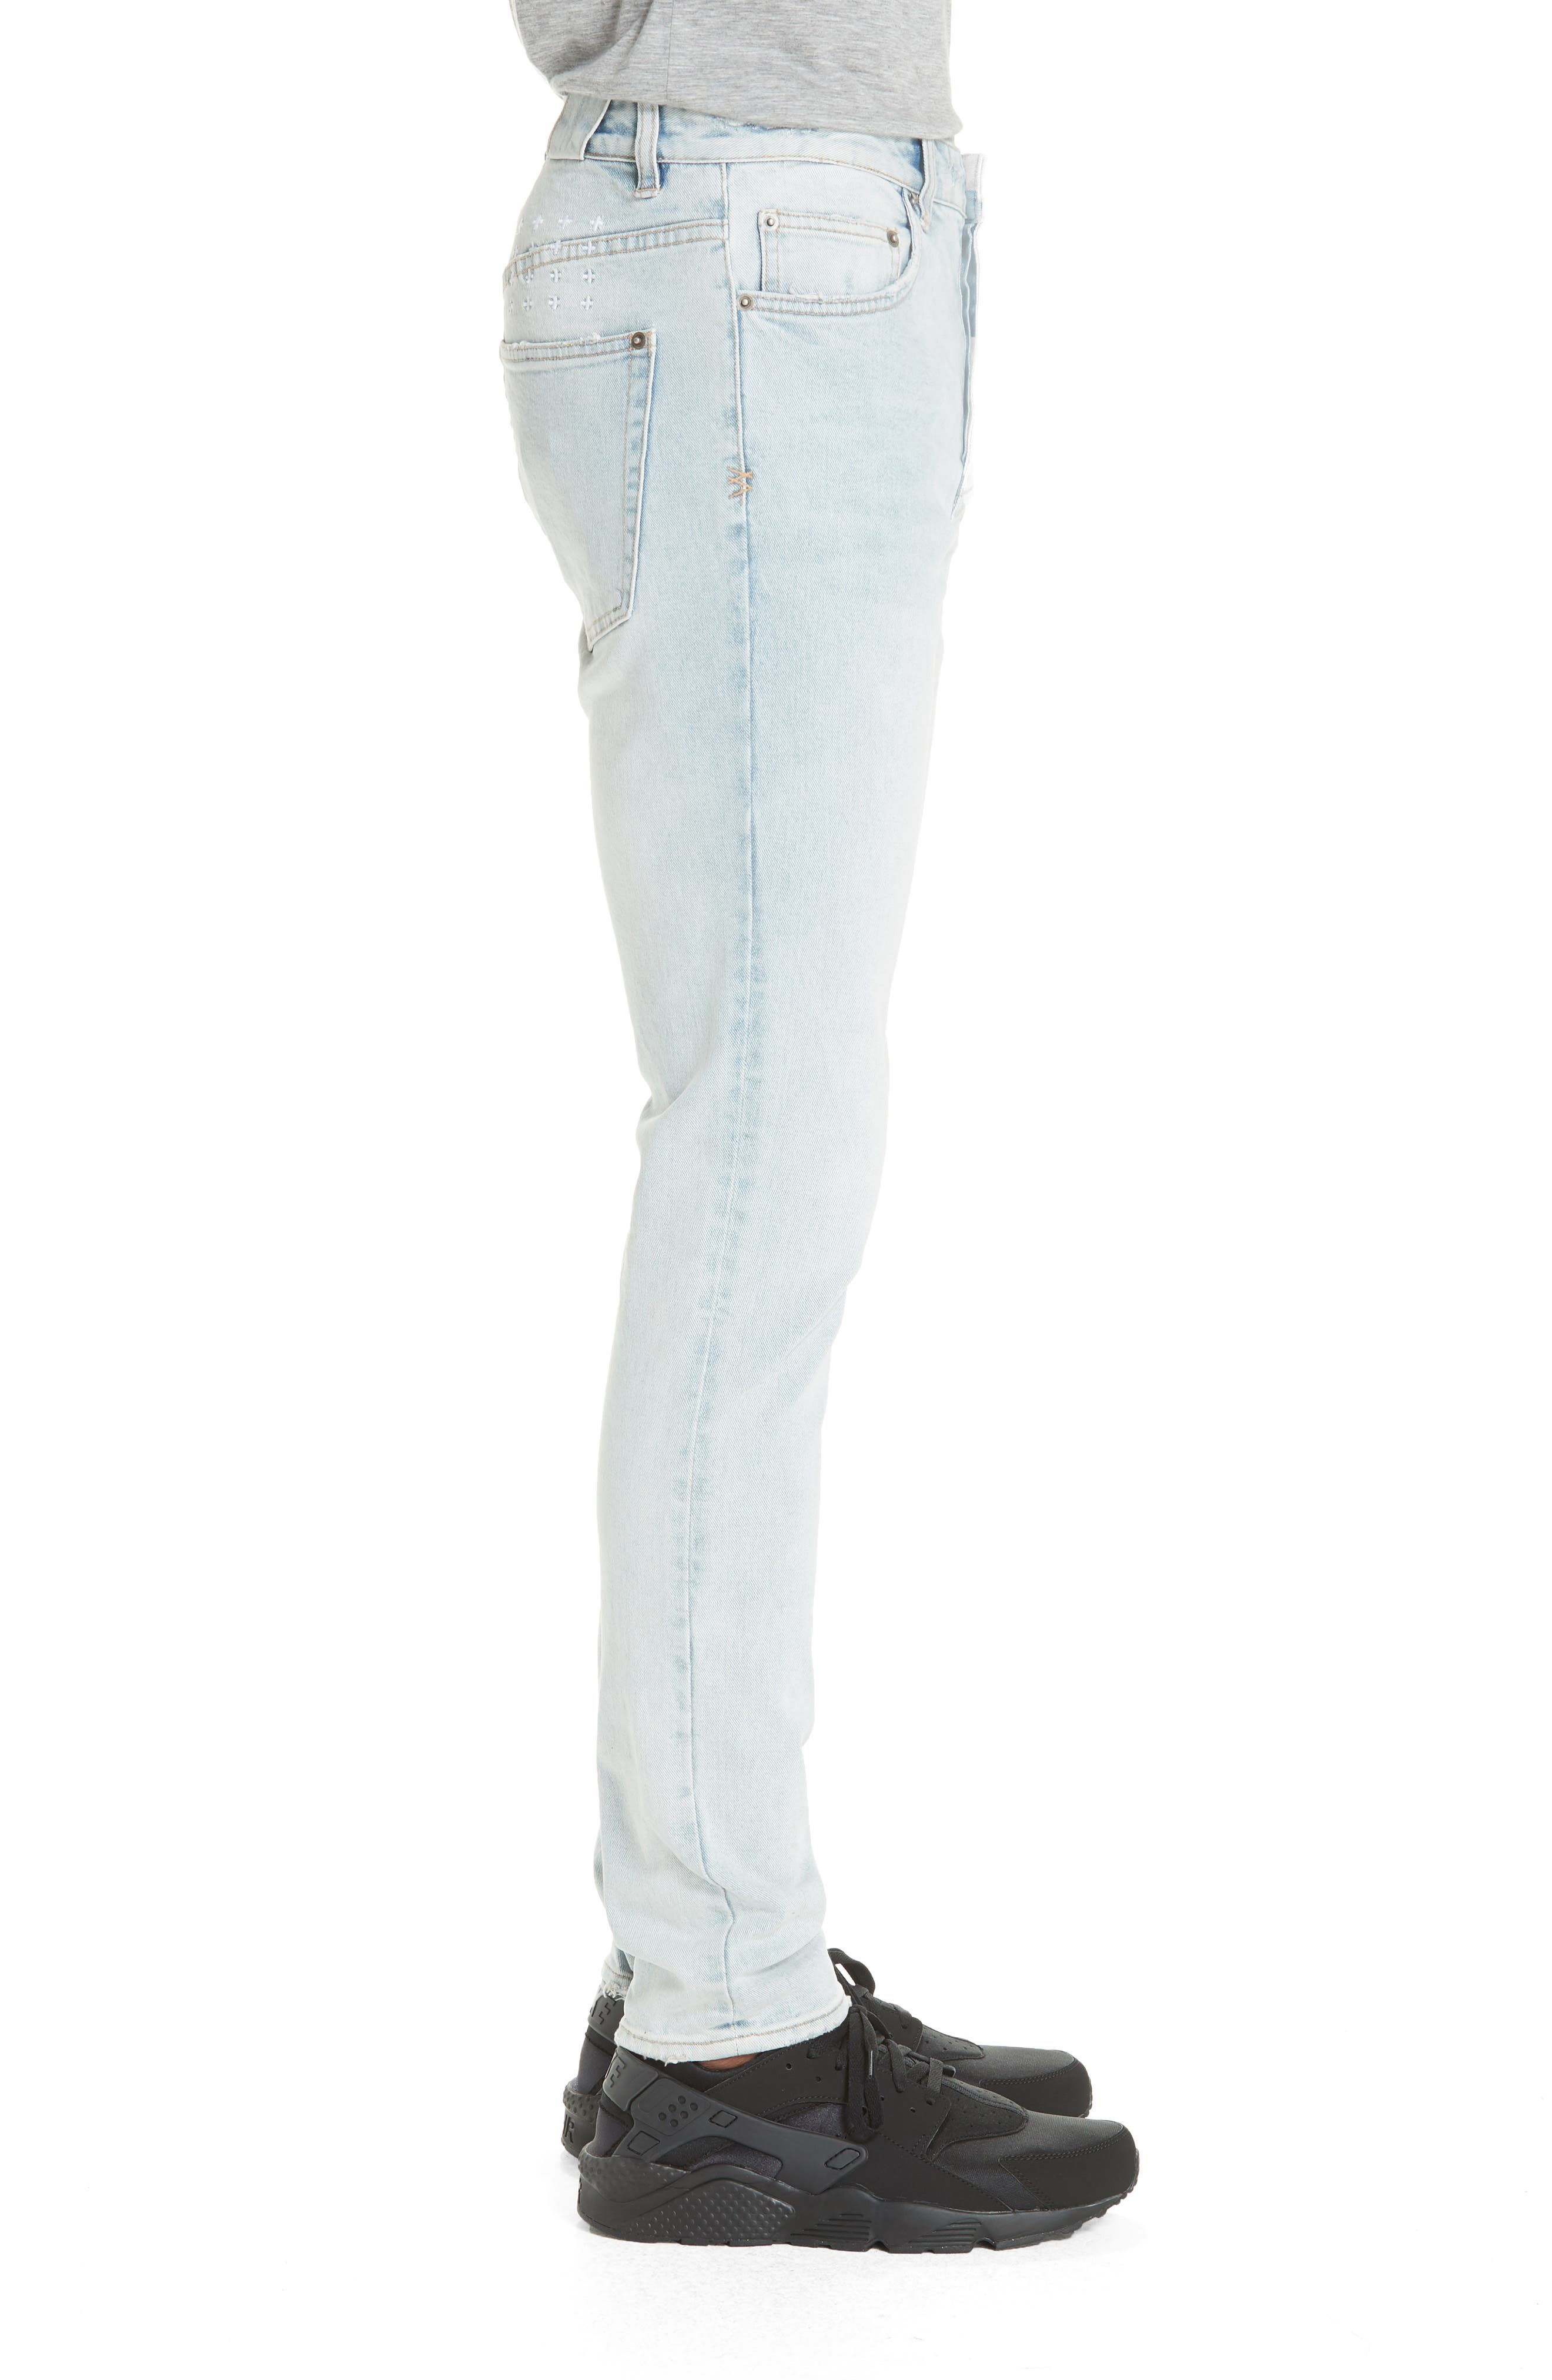 Chitch Chillz Skinny Fit Jeans,                             Alternate thumbnail 3, color,                             450